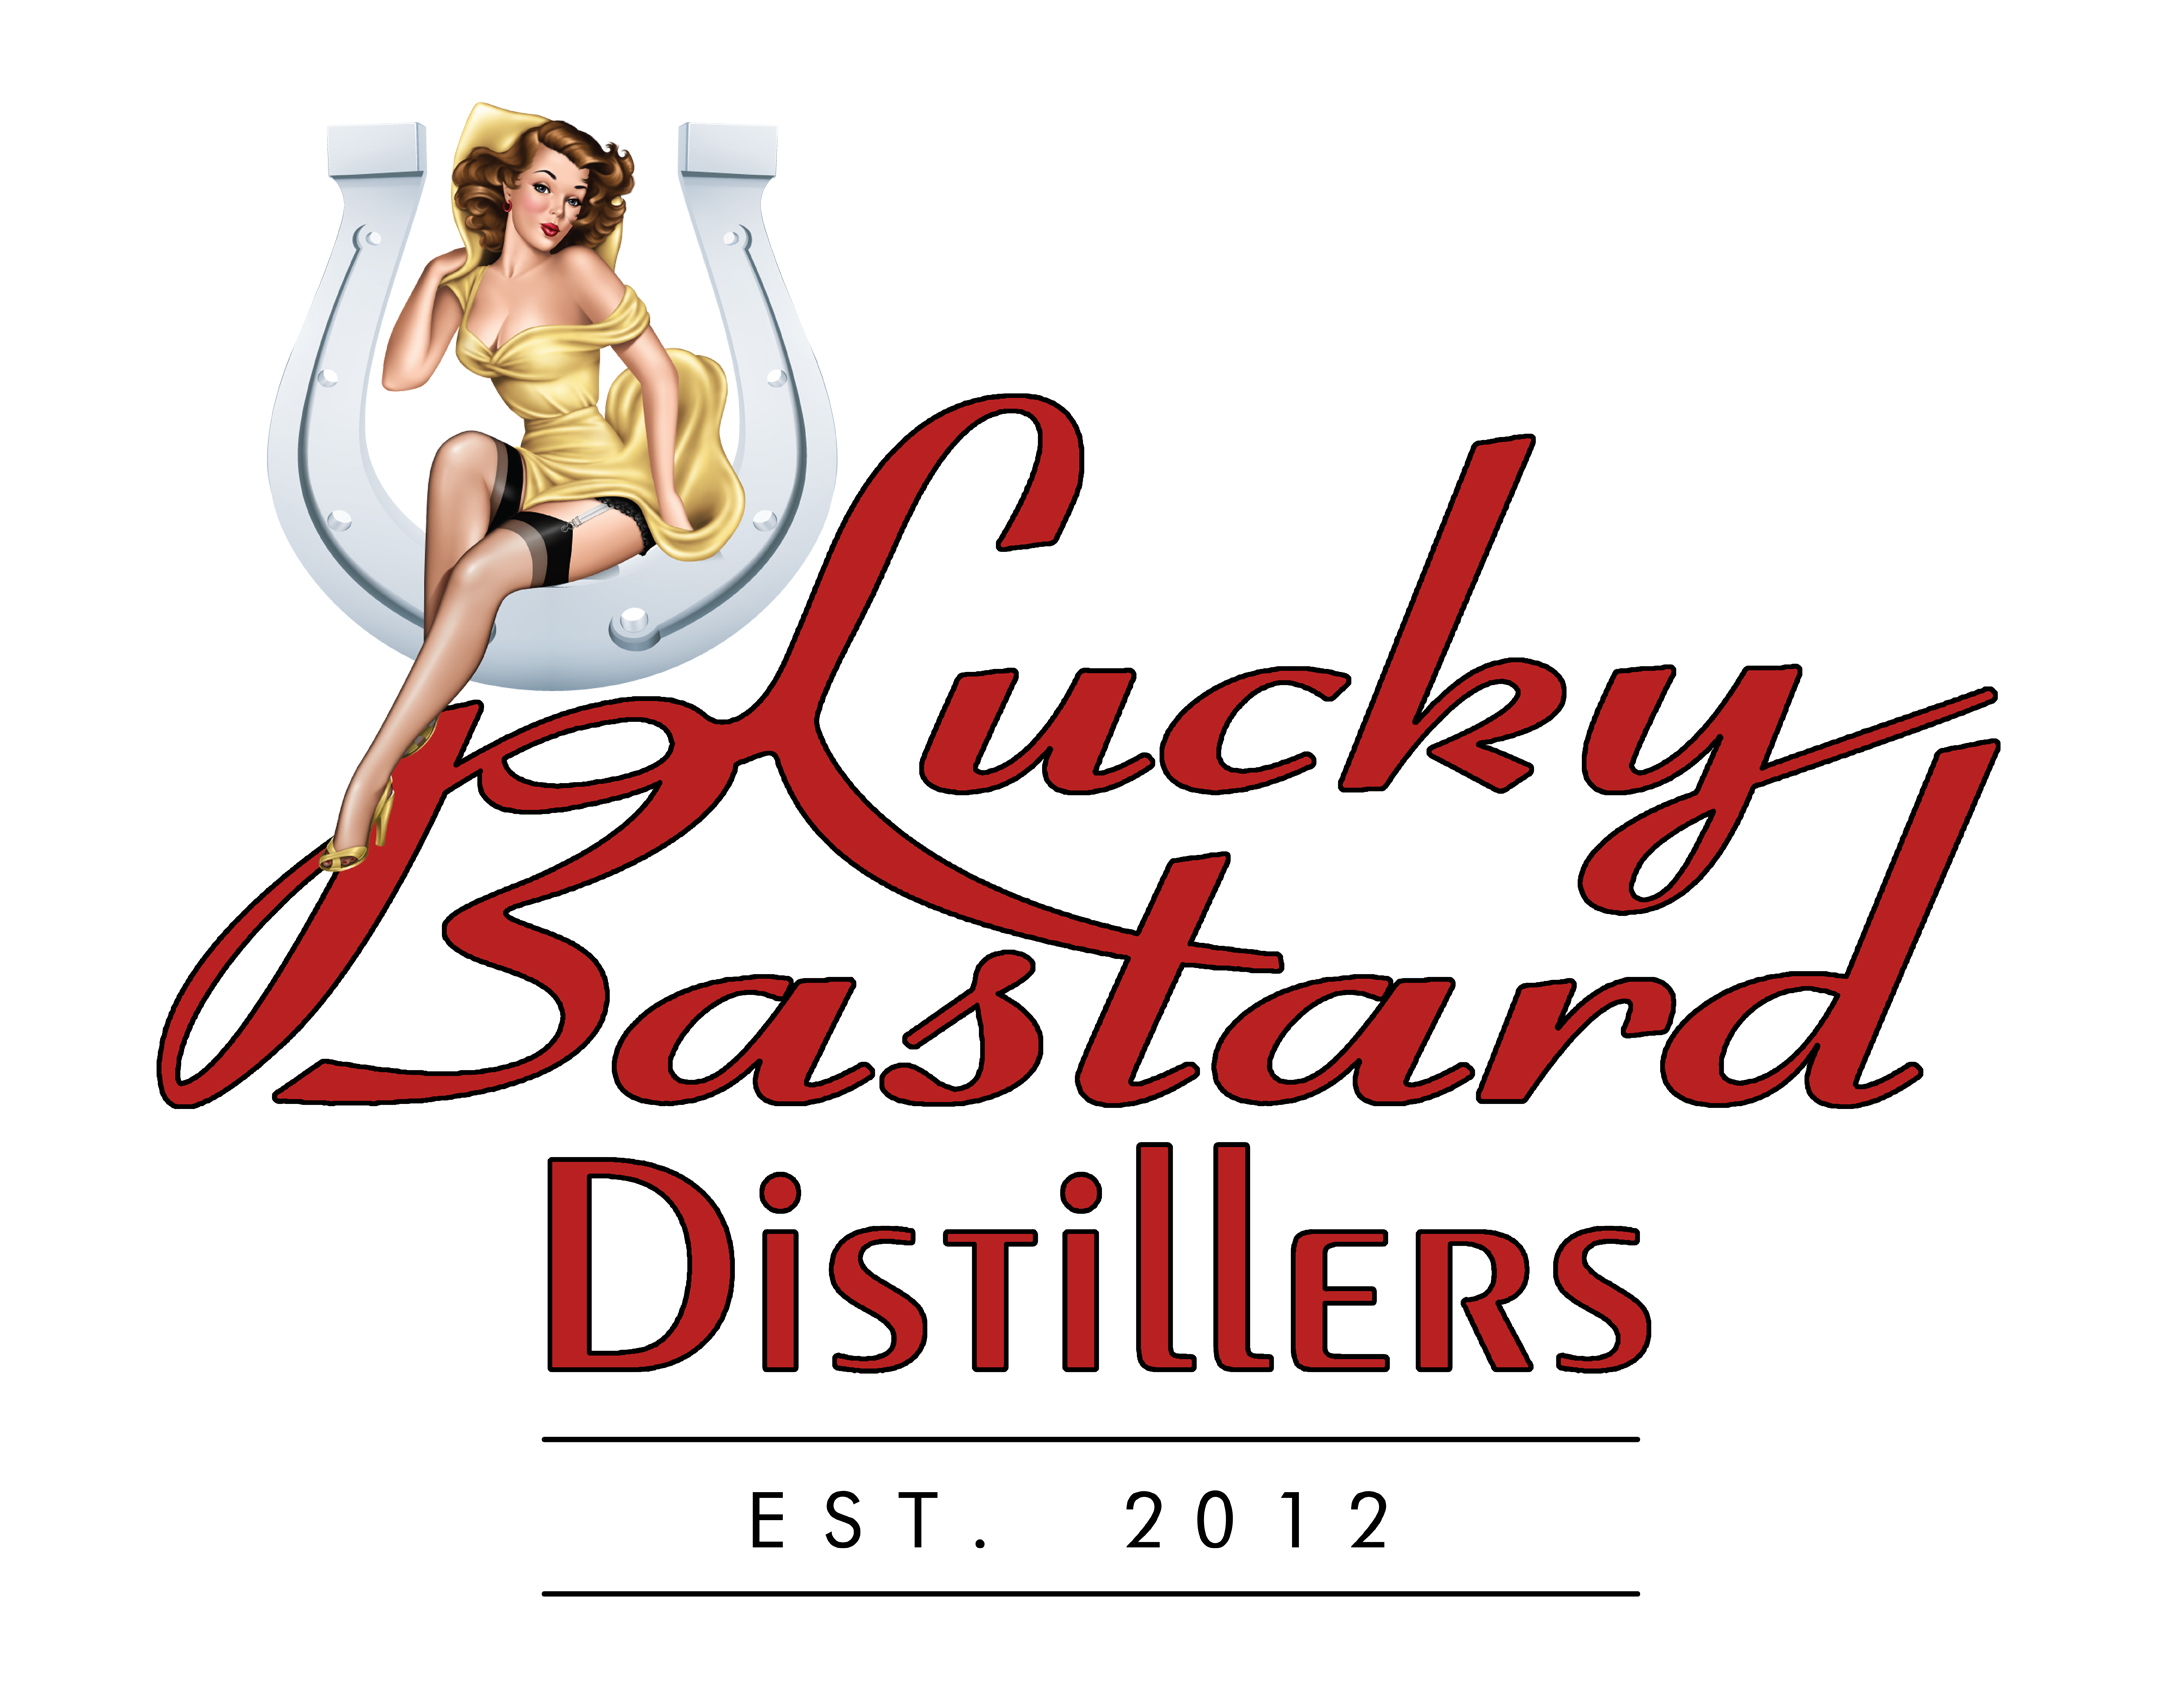 Lucky-Bastard-Distillers-Est.-2012-Vodka-Girl-Top-Left-copy